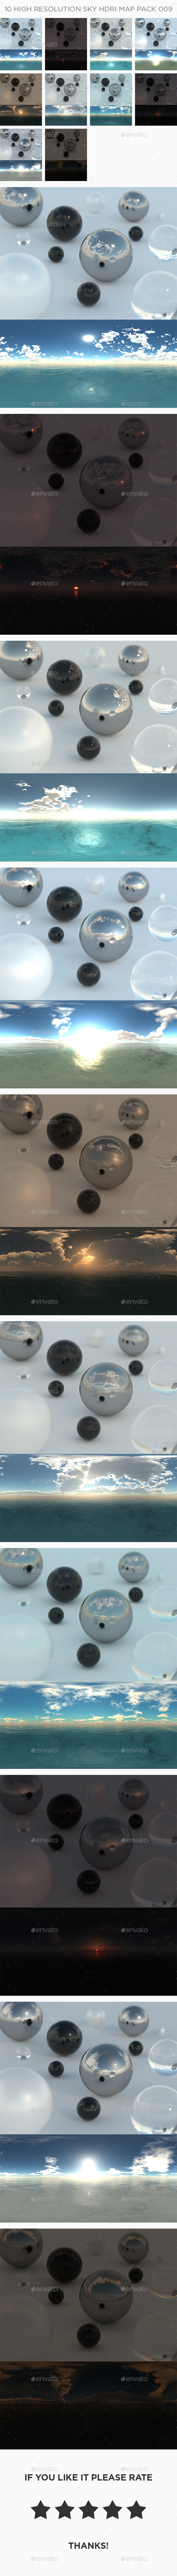 3DOcean 10 High Resolution Sky HDRi Maps Pack 009 21011662